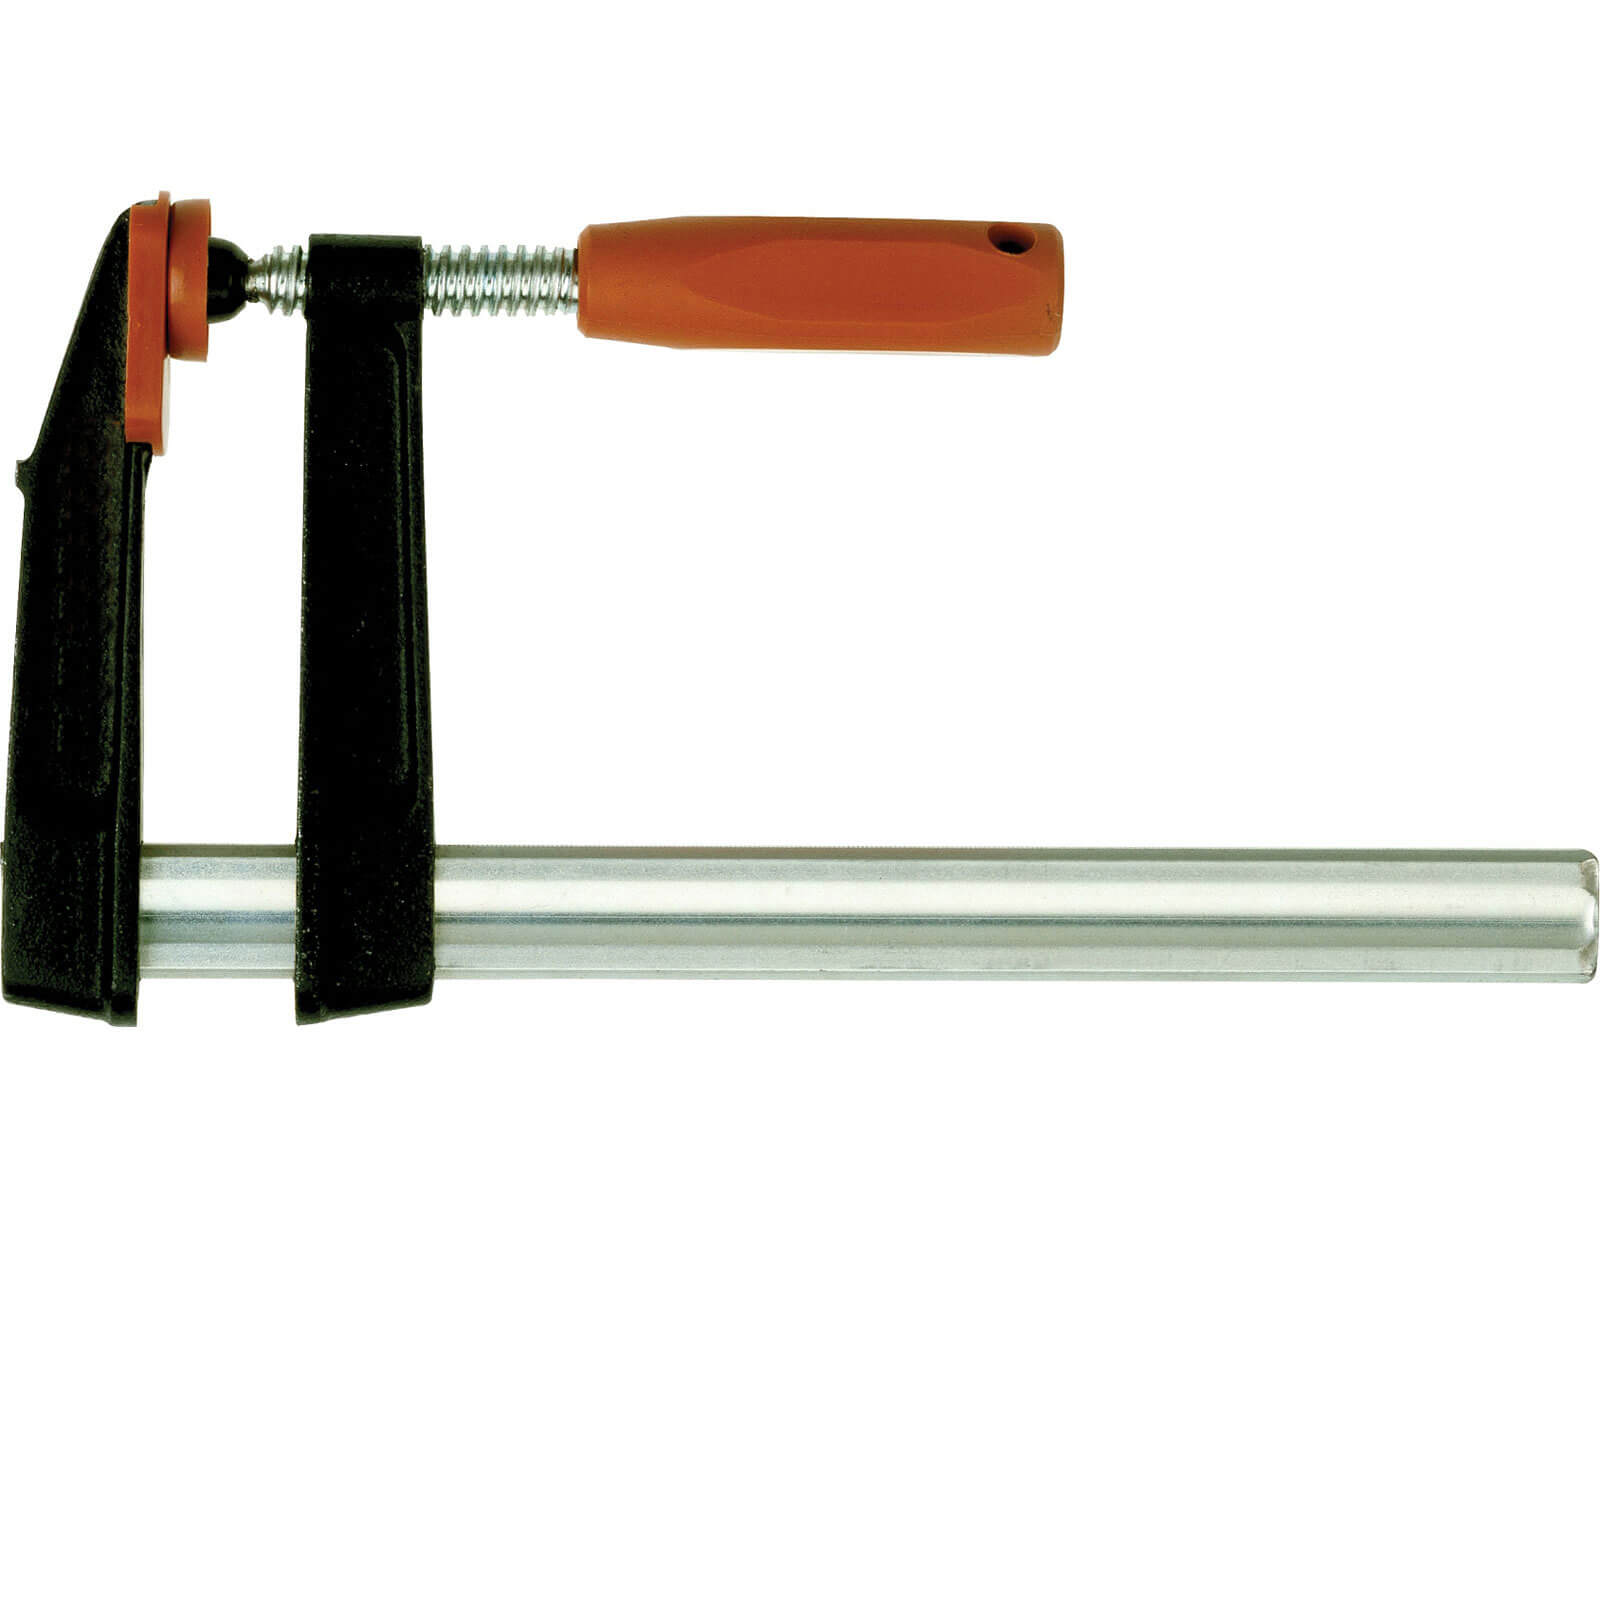 Image of Bahco Steel F Clamp 200mm 100mm